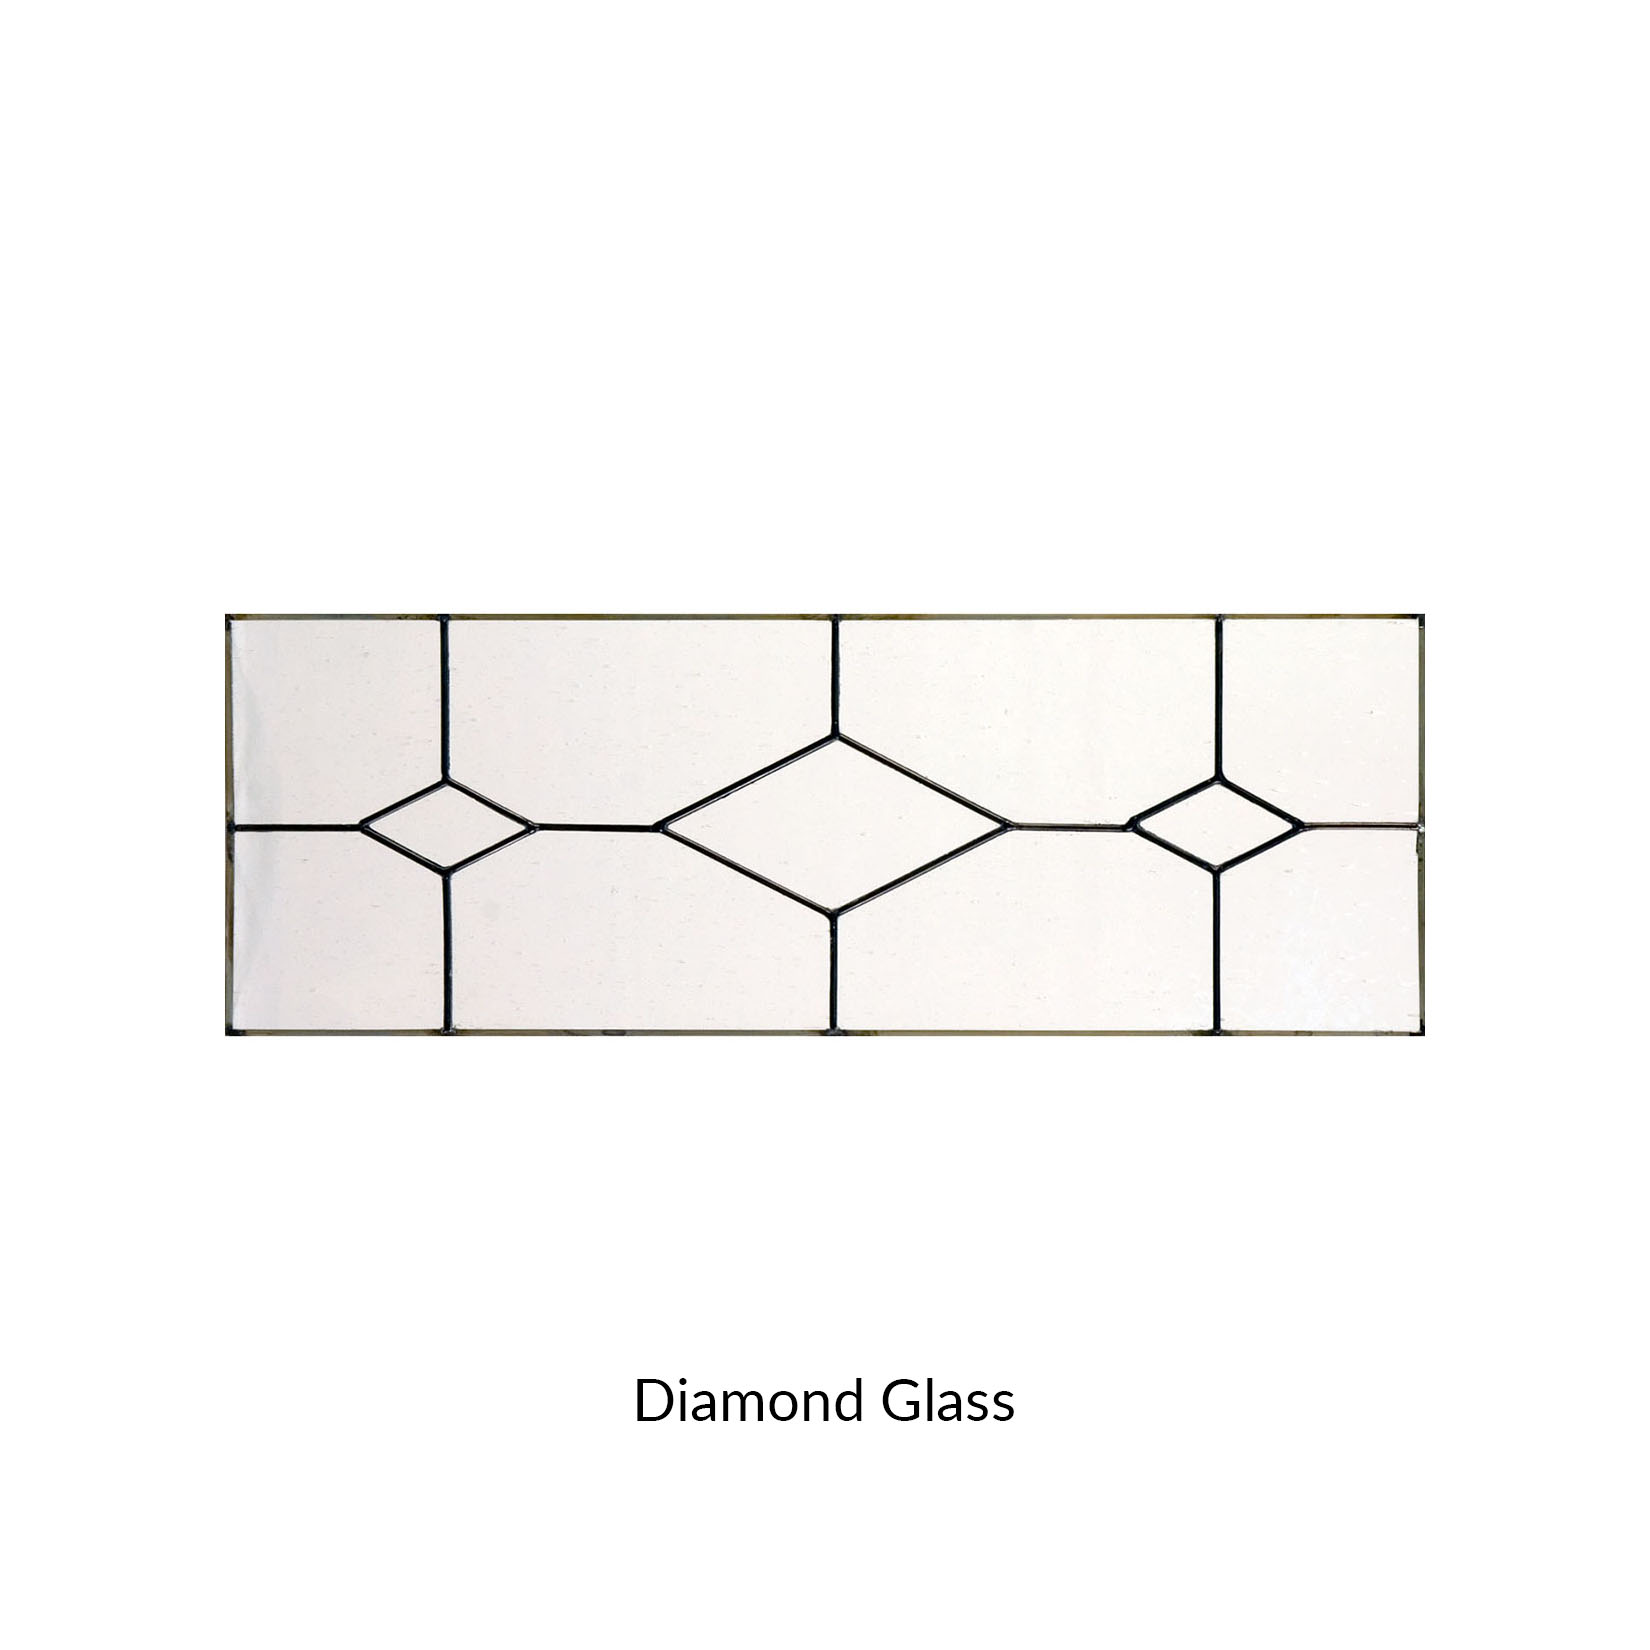 diamond-glass.jpg